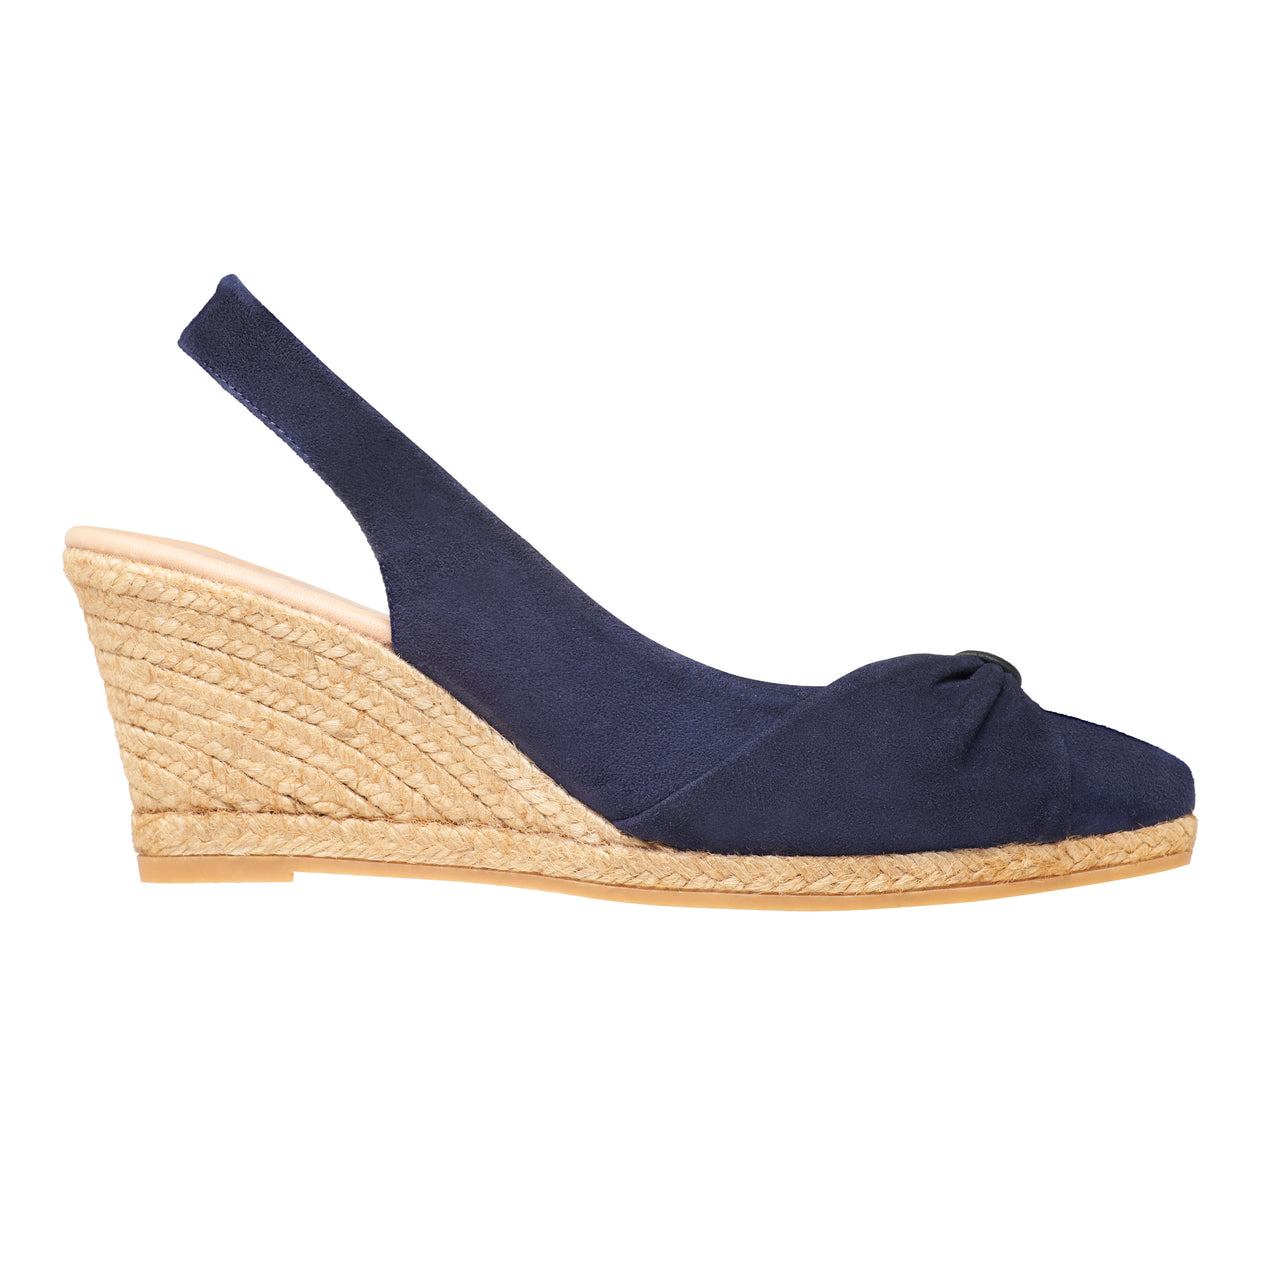 TYSON Midnight Blue espadrilles wedges - Badt and Co - singapore